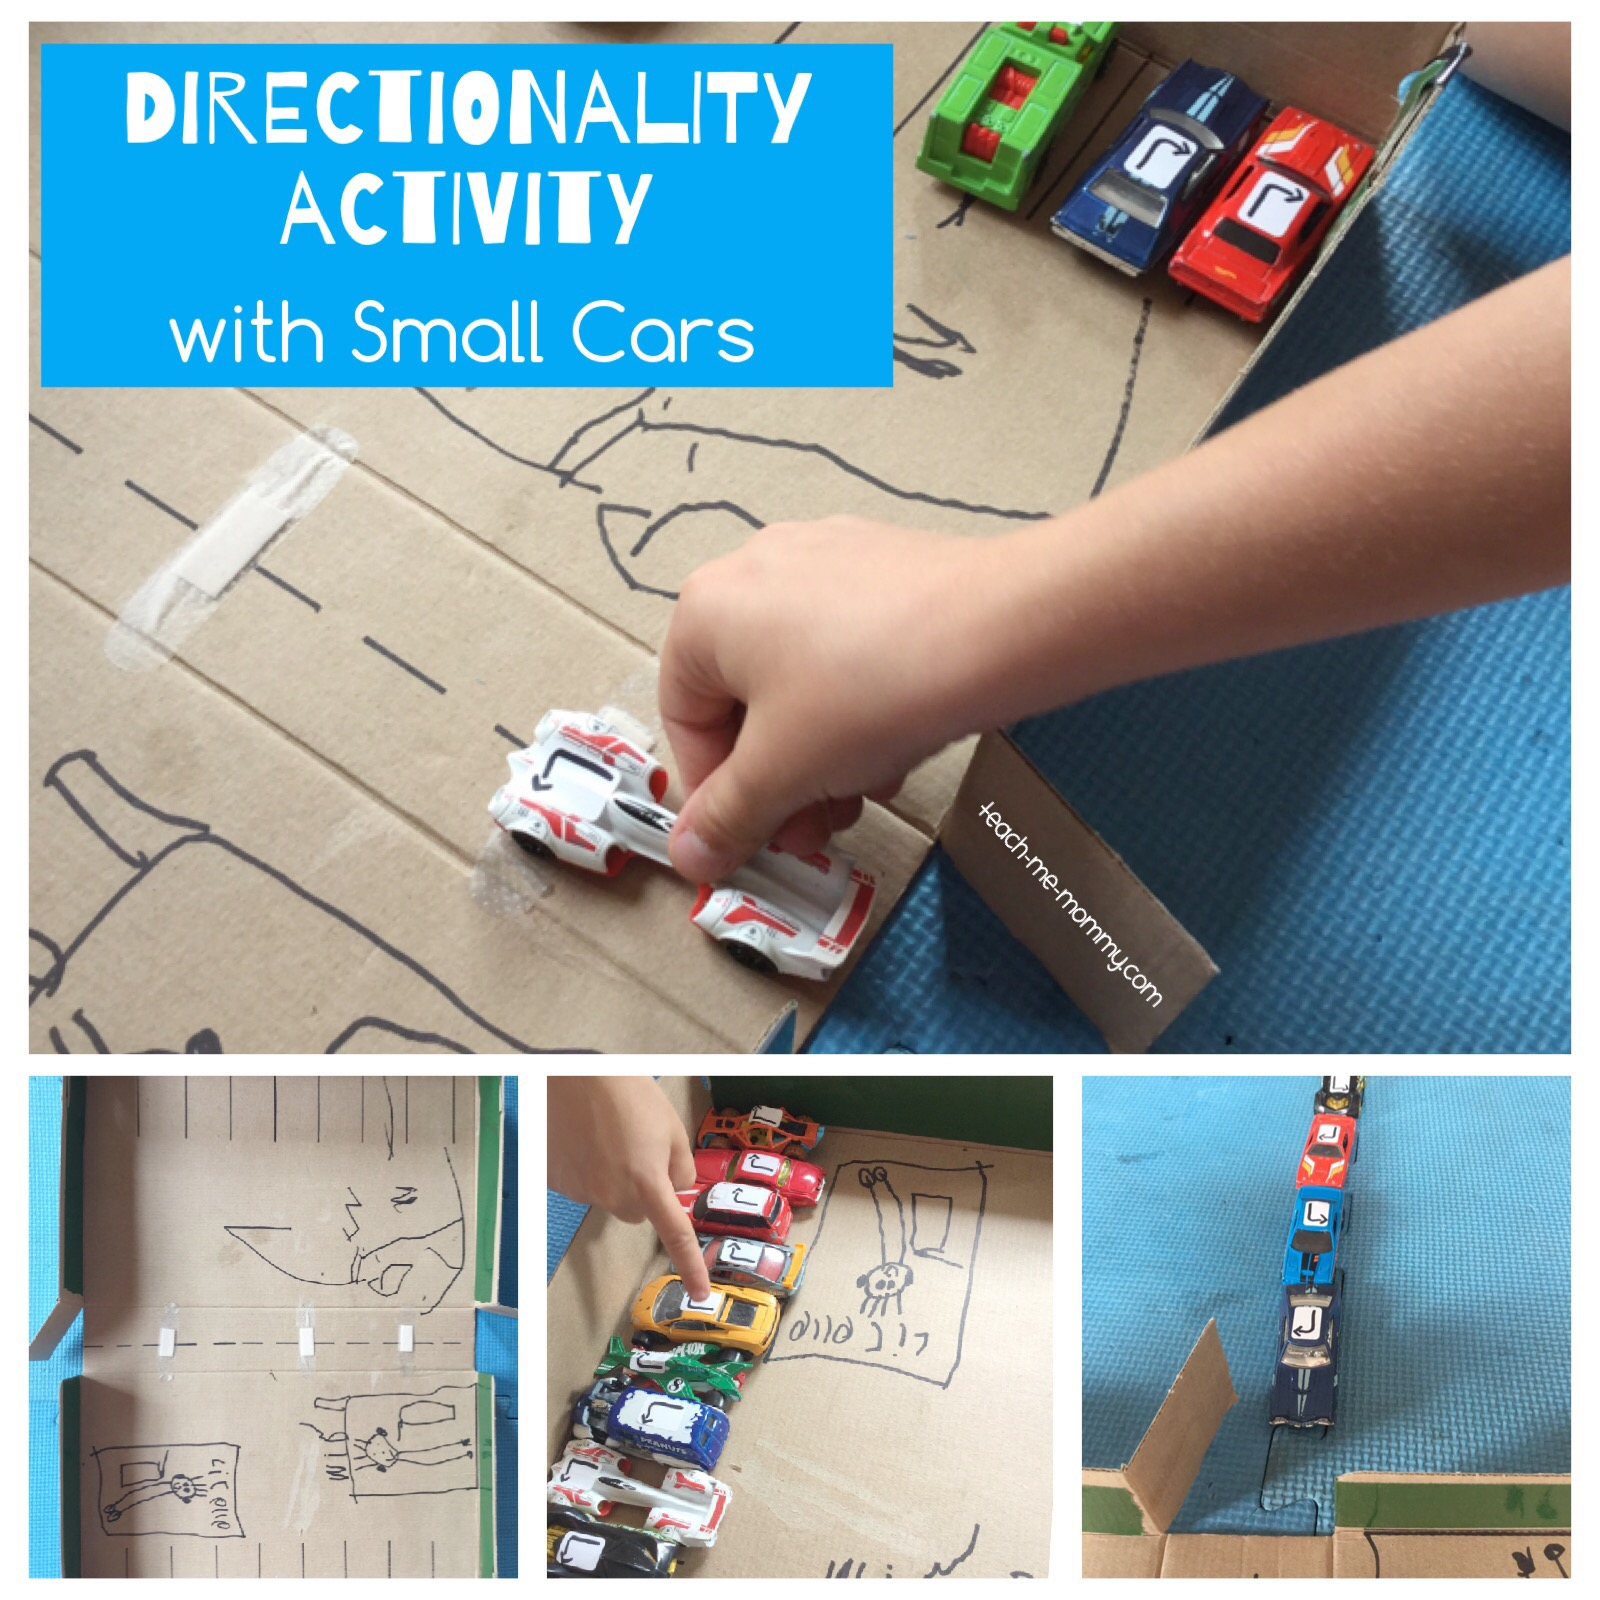 directionality with cars